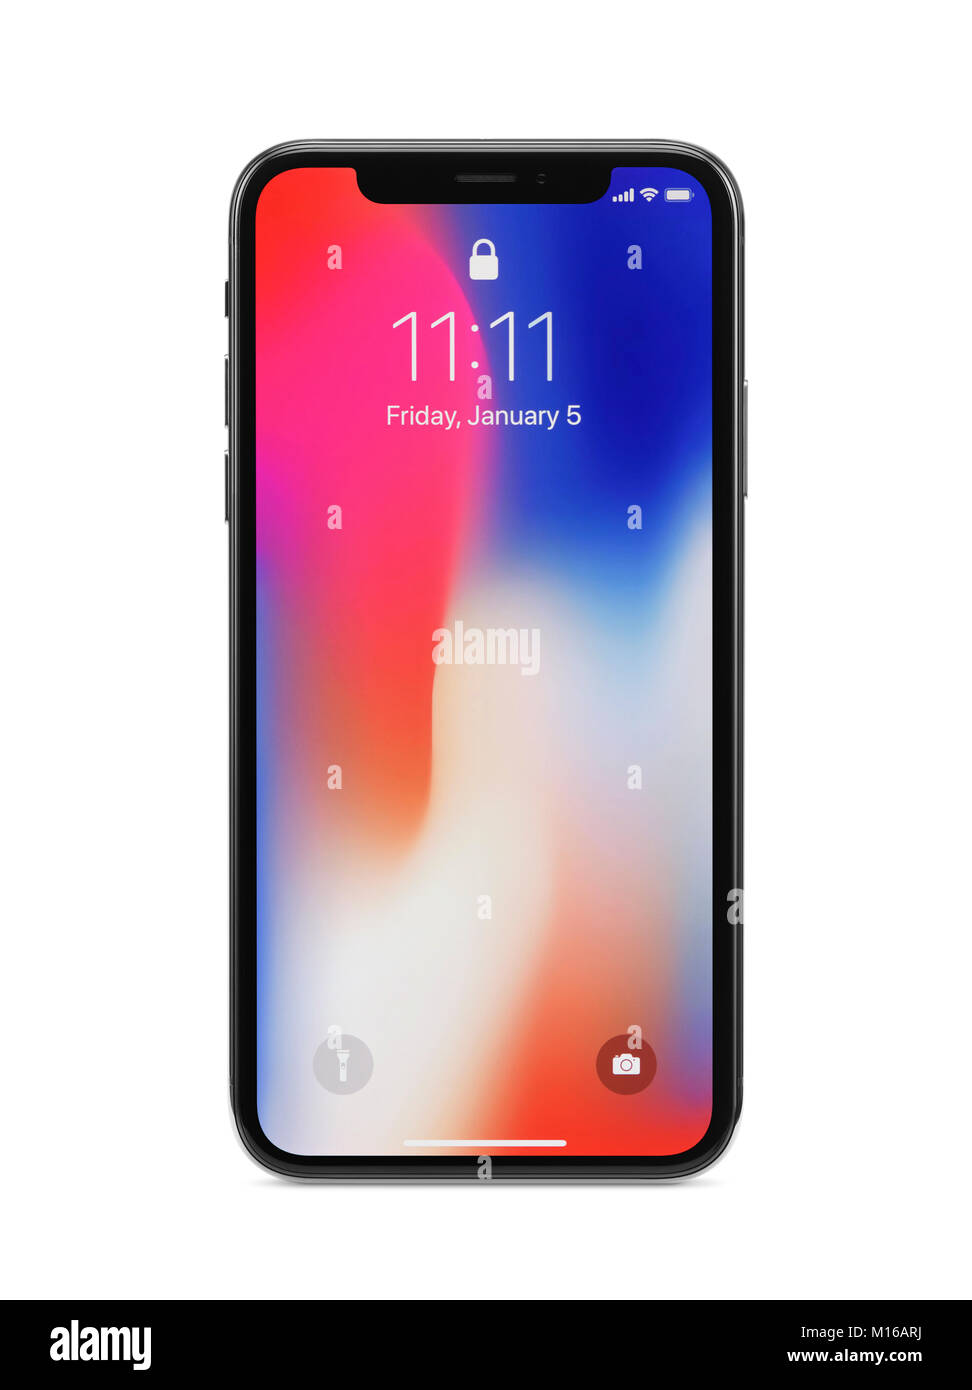 Apple iPhone X, large screen smartphone, with locked screen on its display, front and back, studio shot - Stock Image